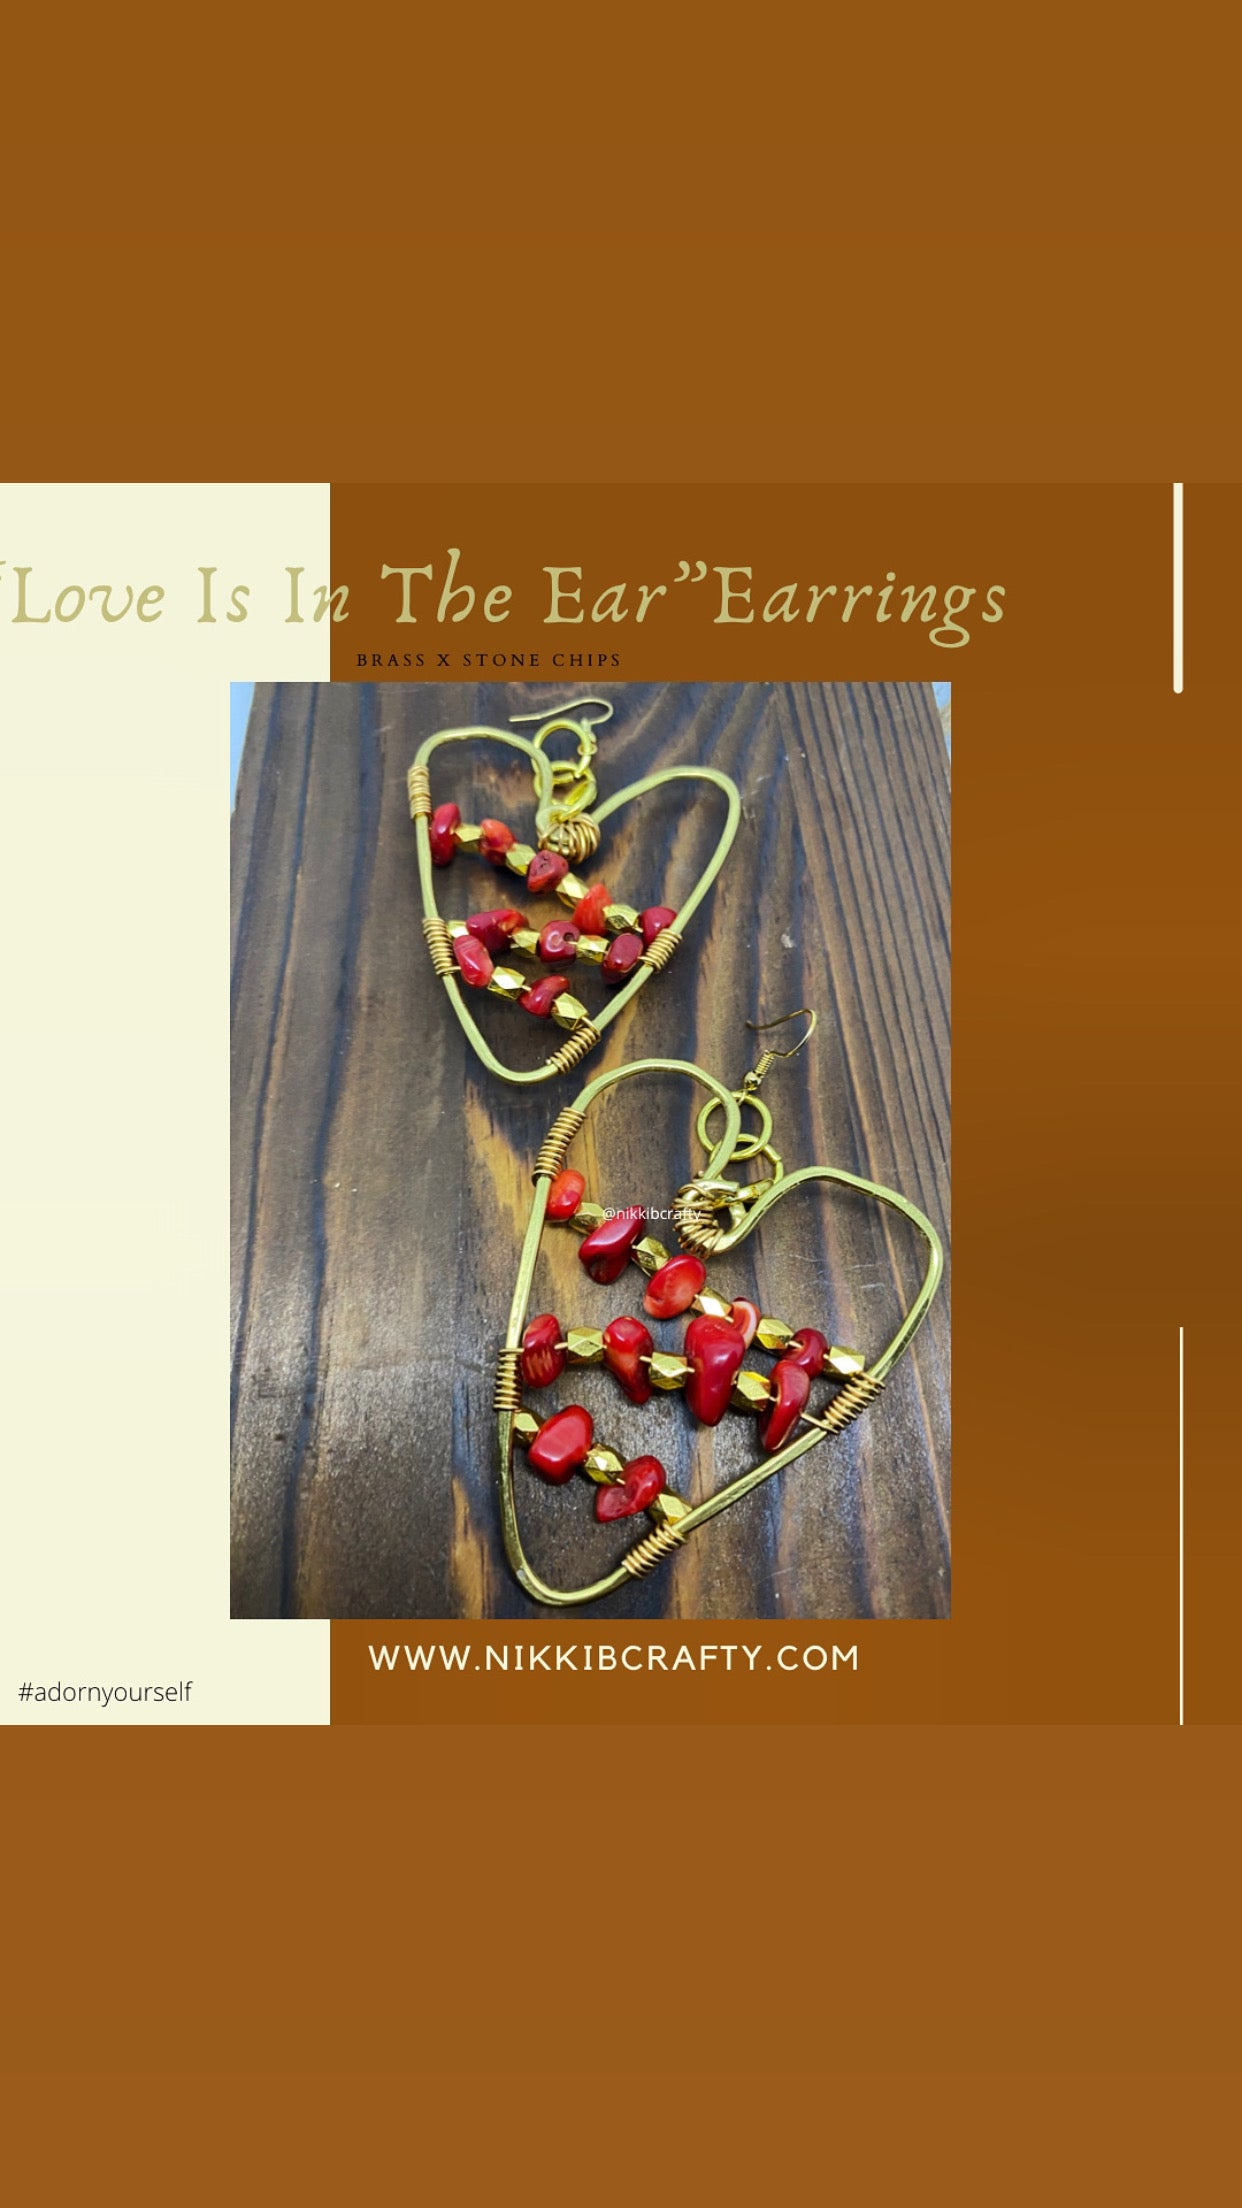 Image of Love is in the ear earrings